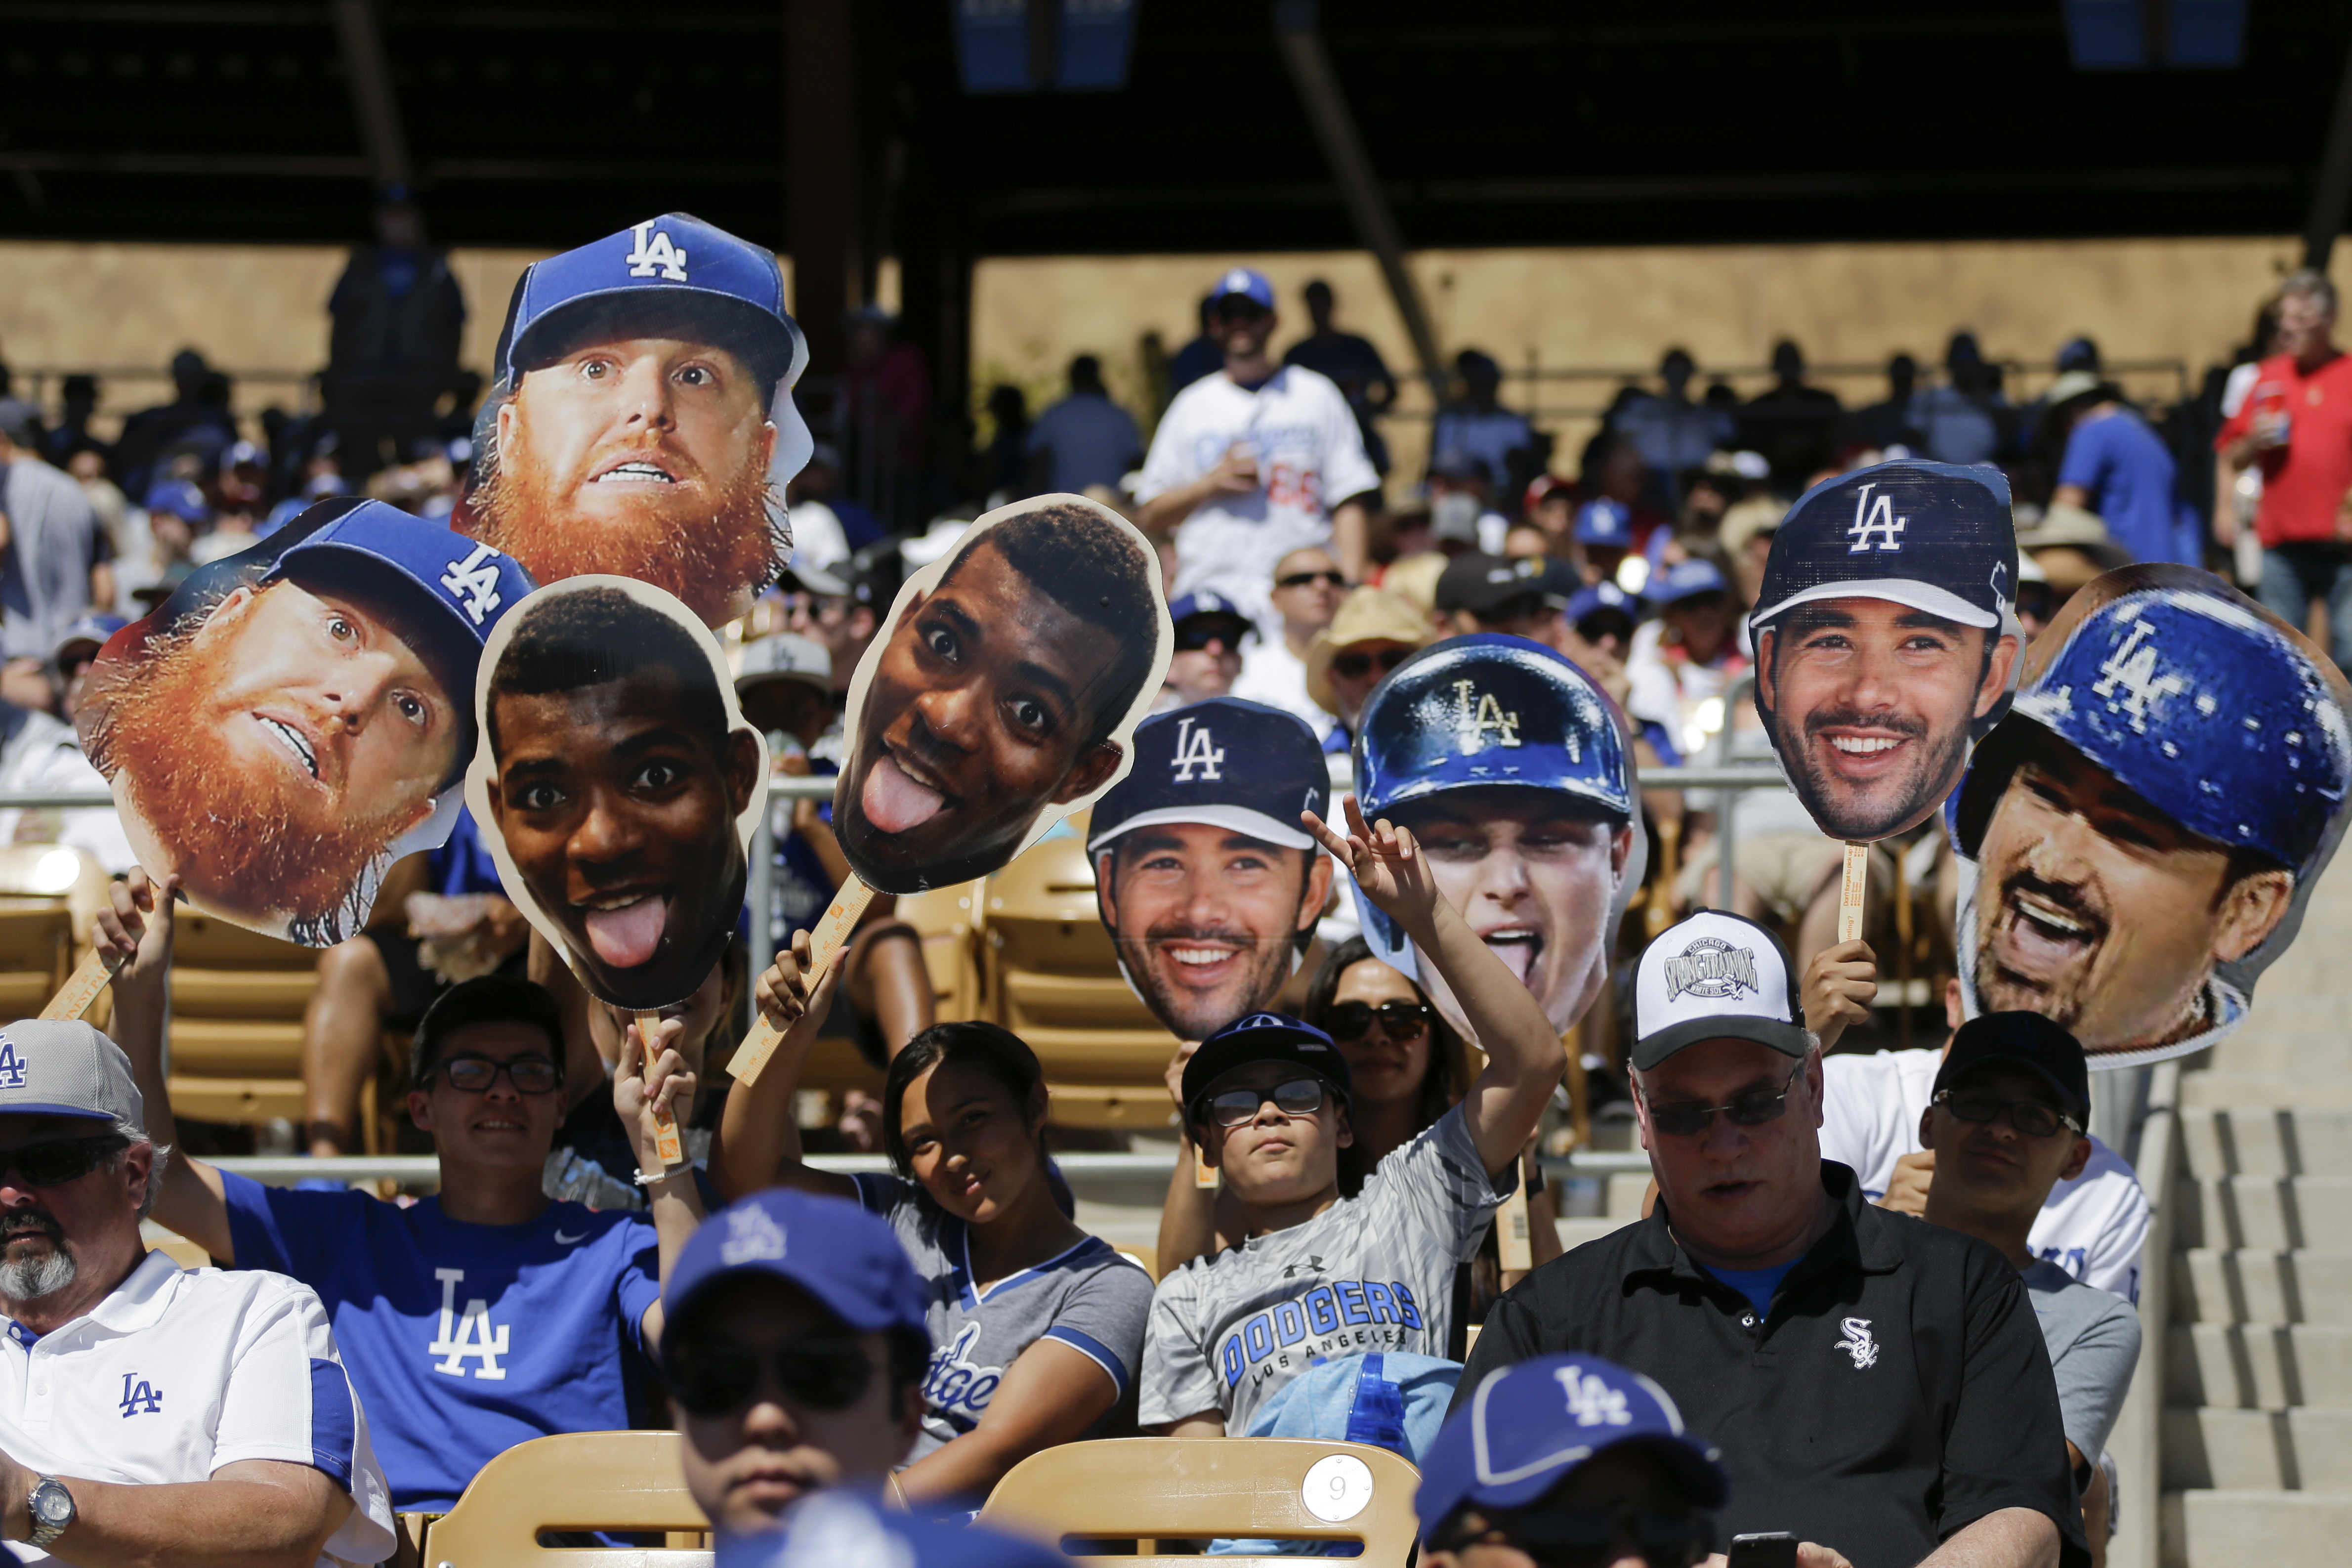 Fans cheer for the Los Angeles Dodgers while watching the team's spring training baseball game against the Chicago White Sox on Saturday, March 19, 2016, in Phoenix. (AP Photo/Jae C. Hong)